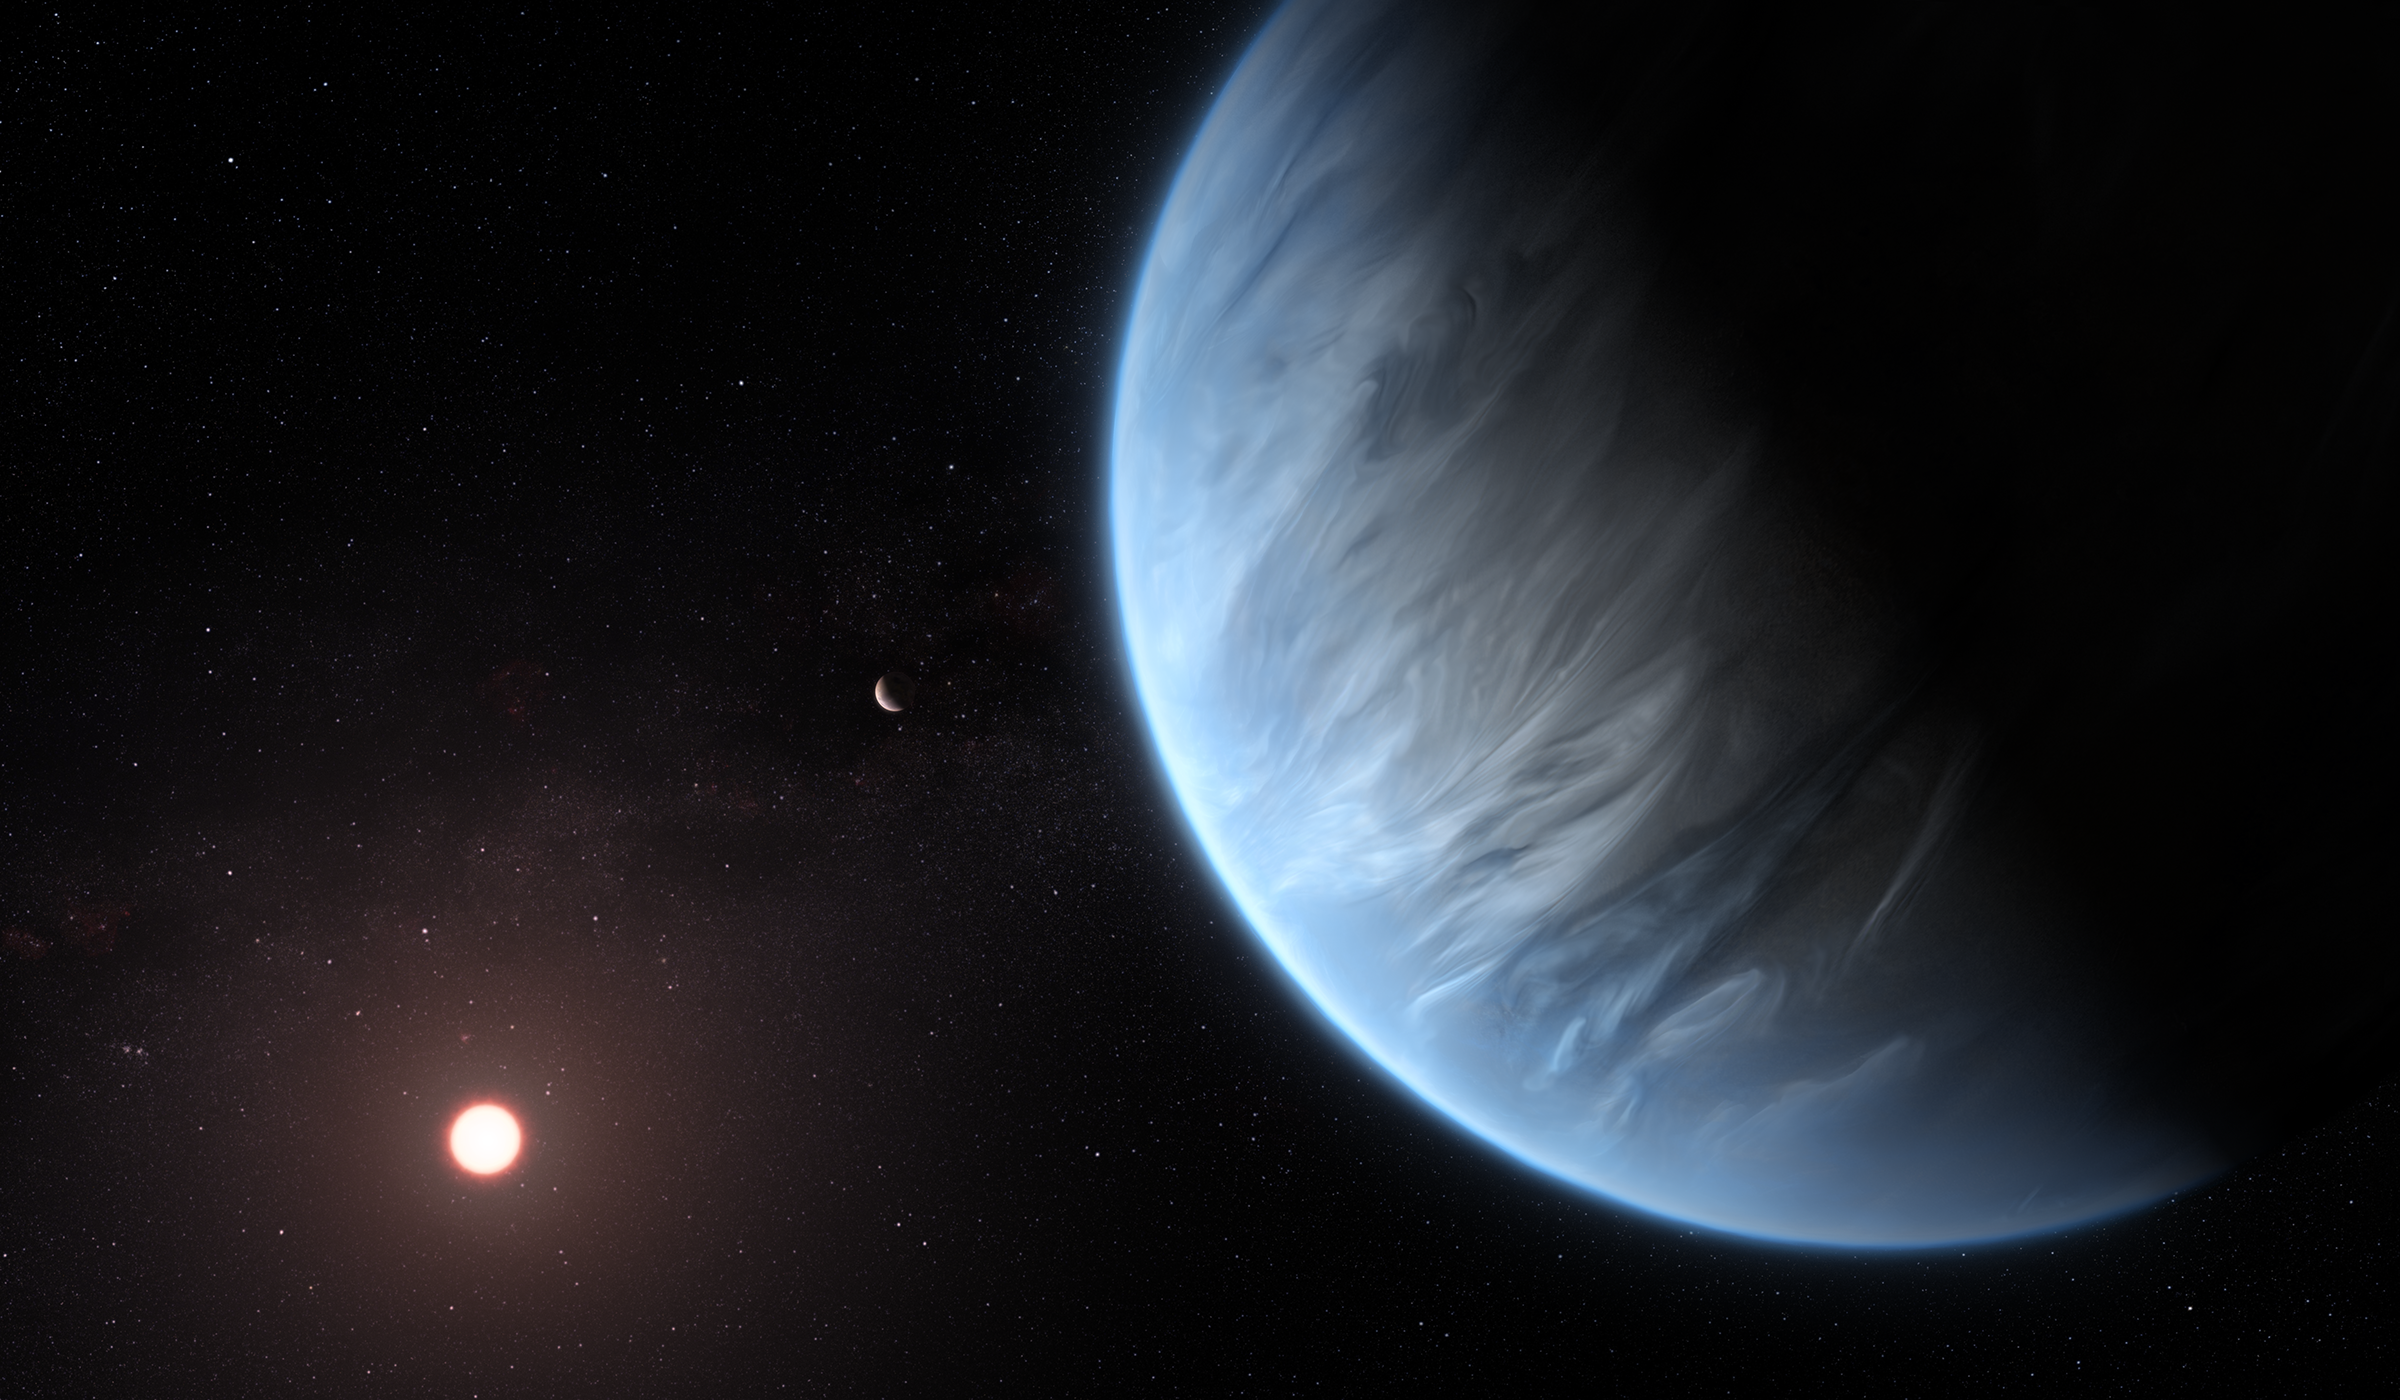 Astronomers Find Water on an Exoplanet Twice the Size of Earth - Scientific American